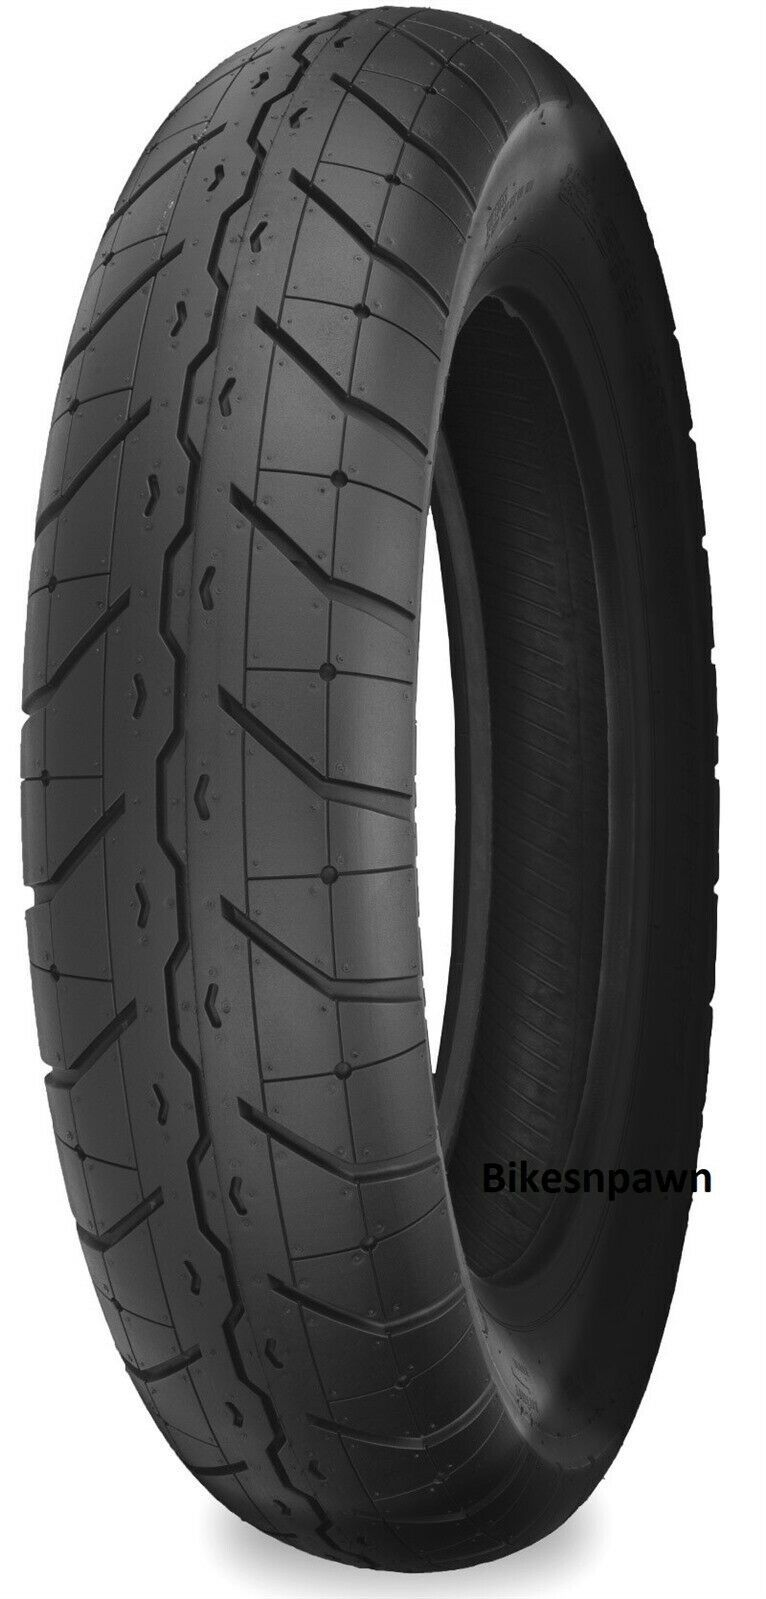 New Shinko 230 Tour Master 150/80-17 Front Motorcycle Tire 72H